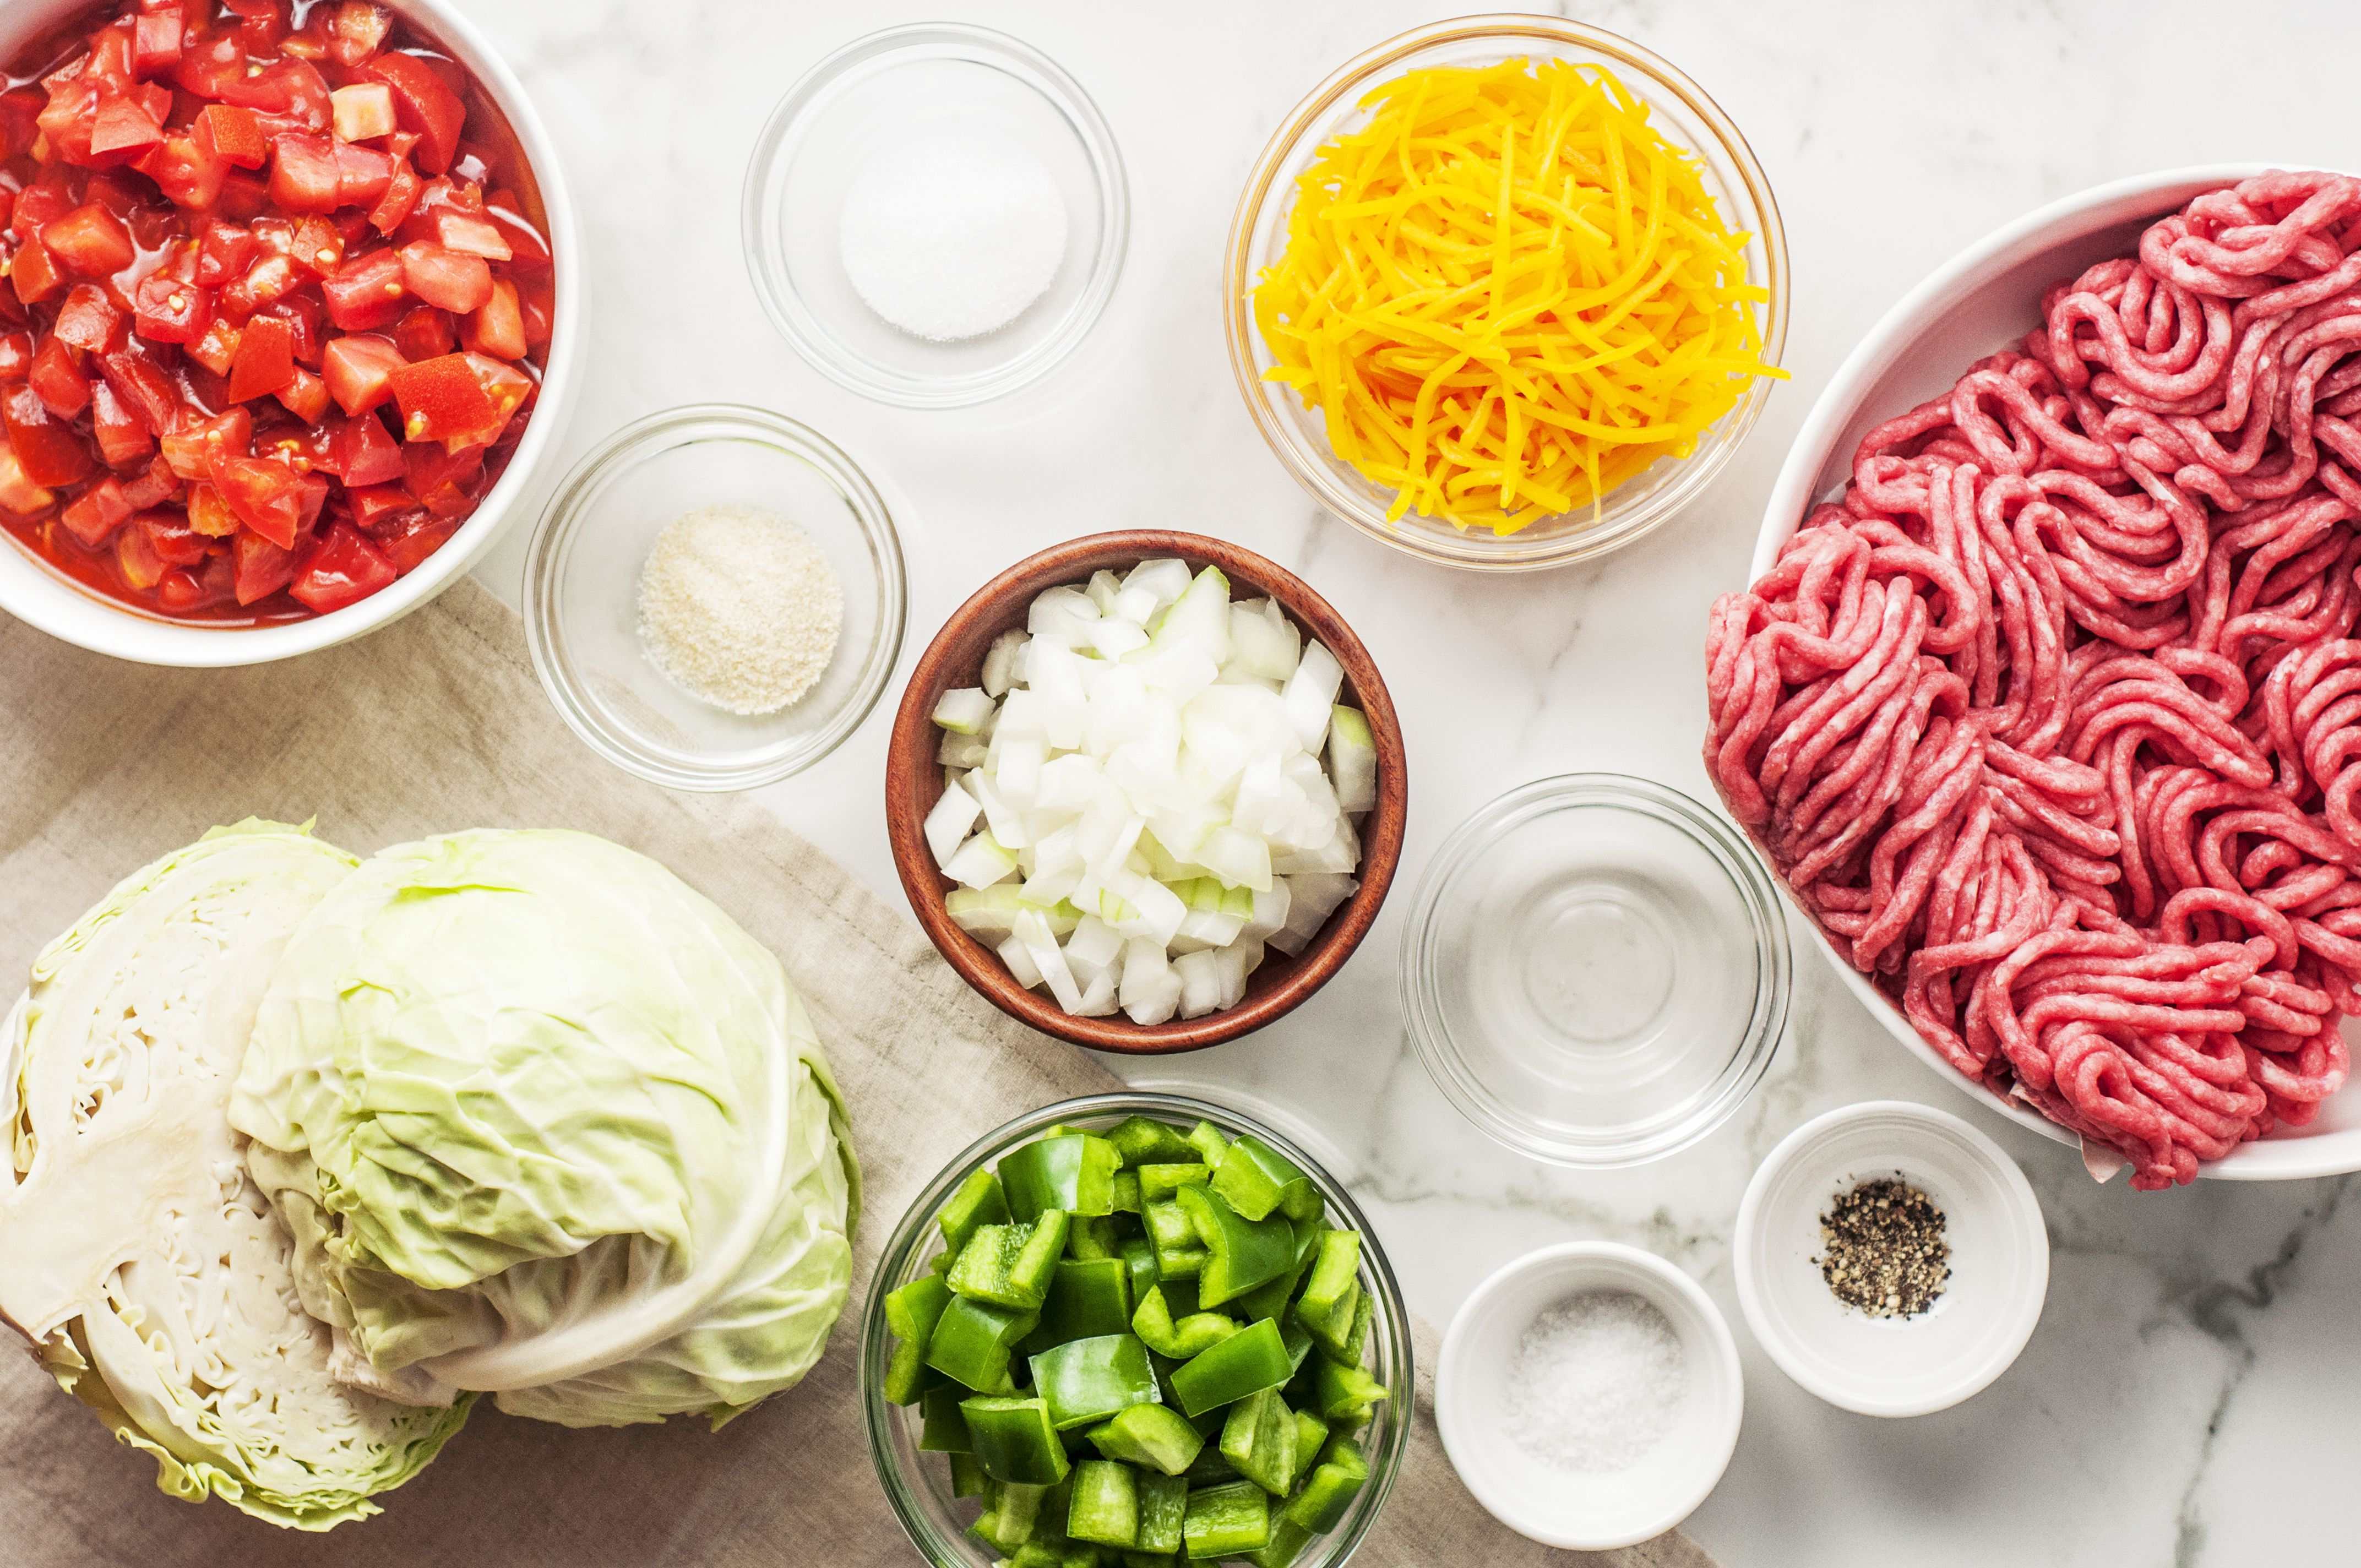 Ingredients for ground beef and cabbage casserole